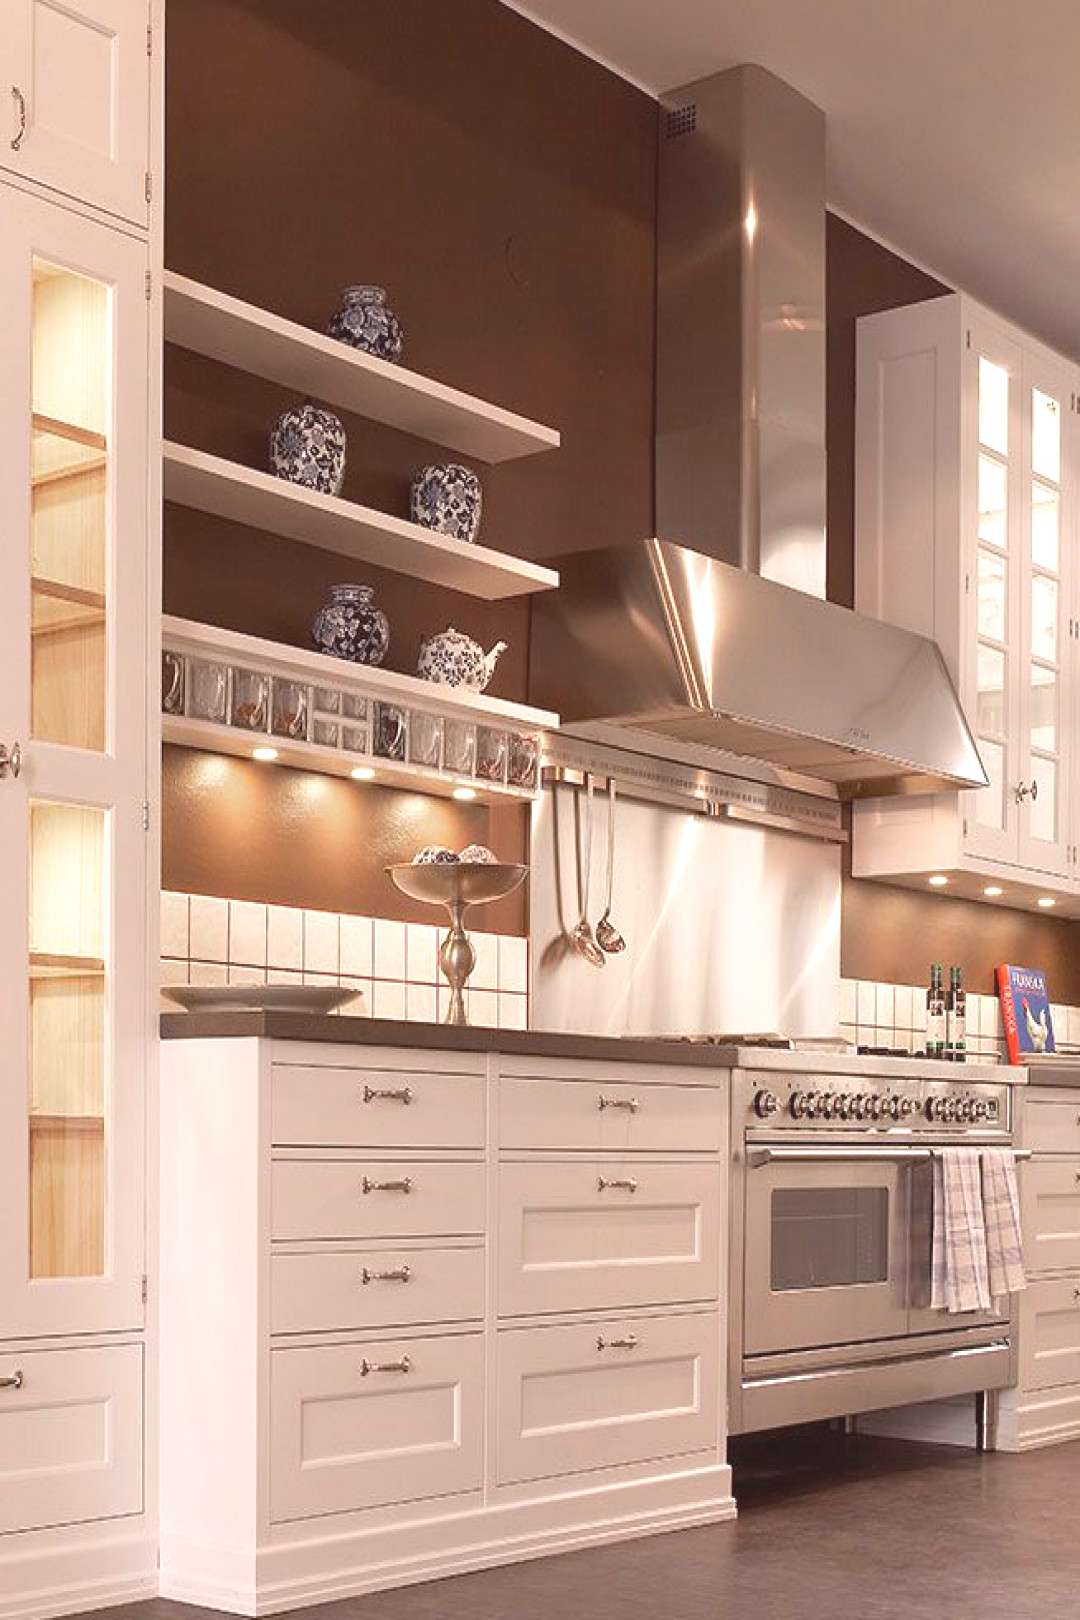 94++ reference of wooden kitchen cabinets wholesale wooden kitchen cabinets wholesale-#wooden Pleas